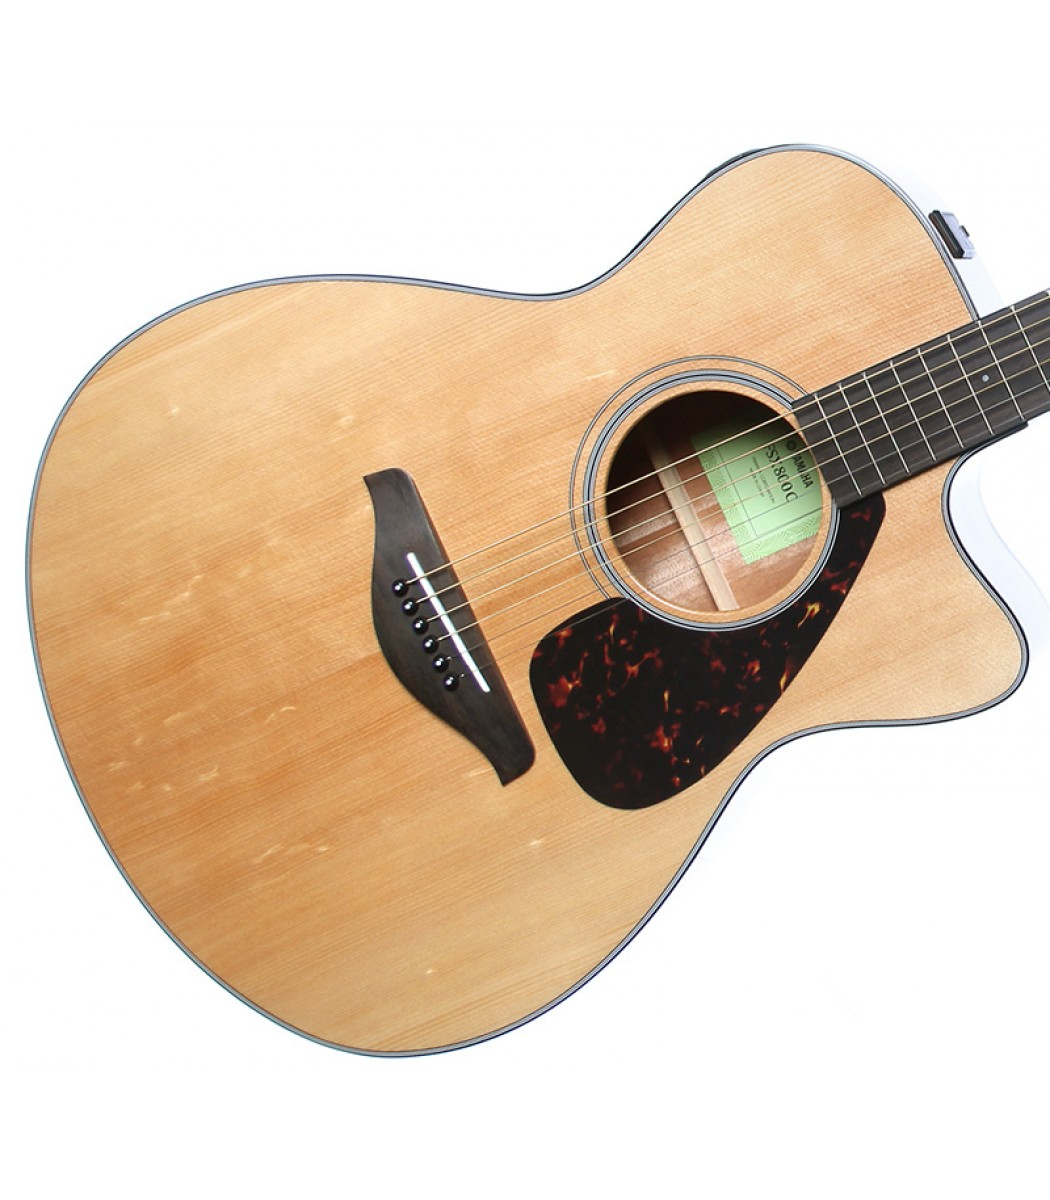 Acoustic Yamaha Yamaha Fsx800c Acoustic Guitar Natural